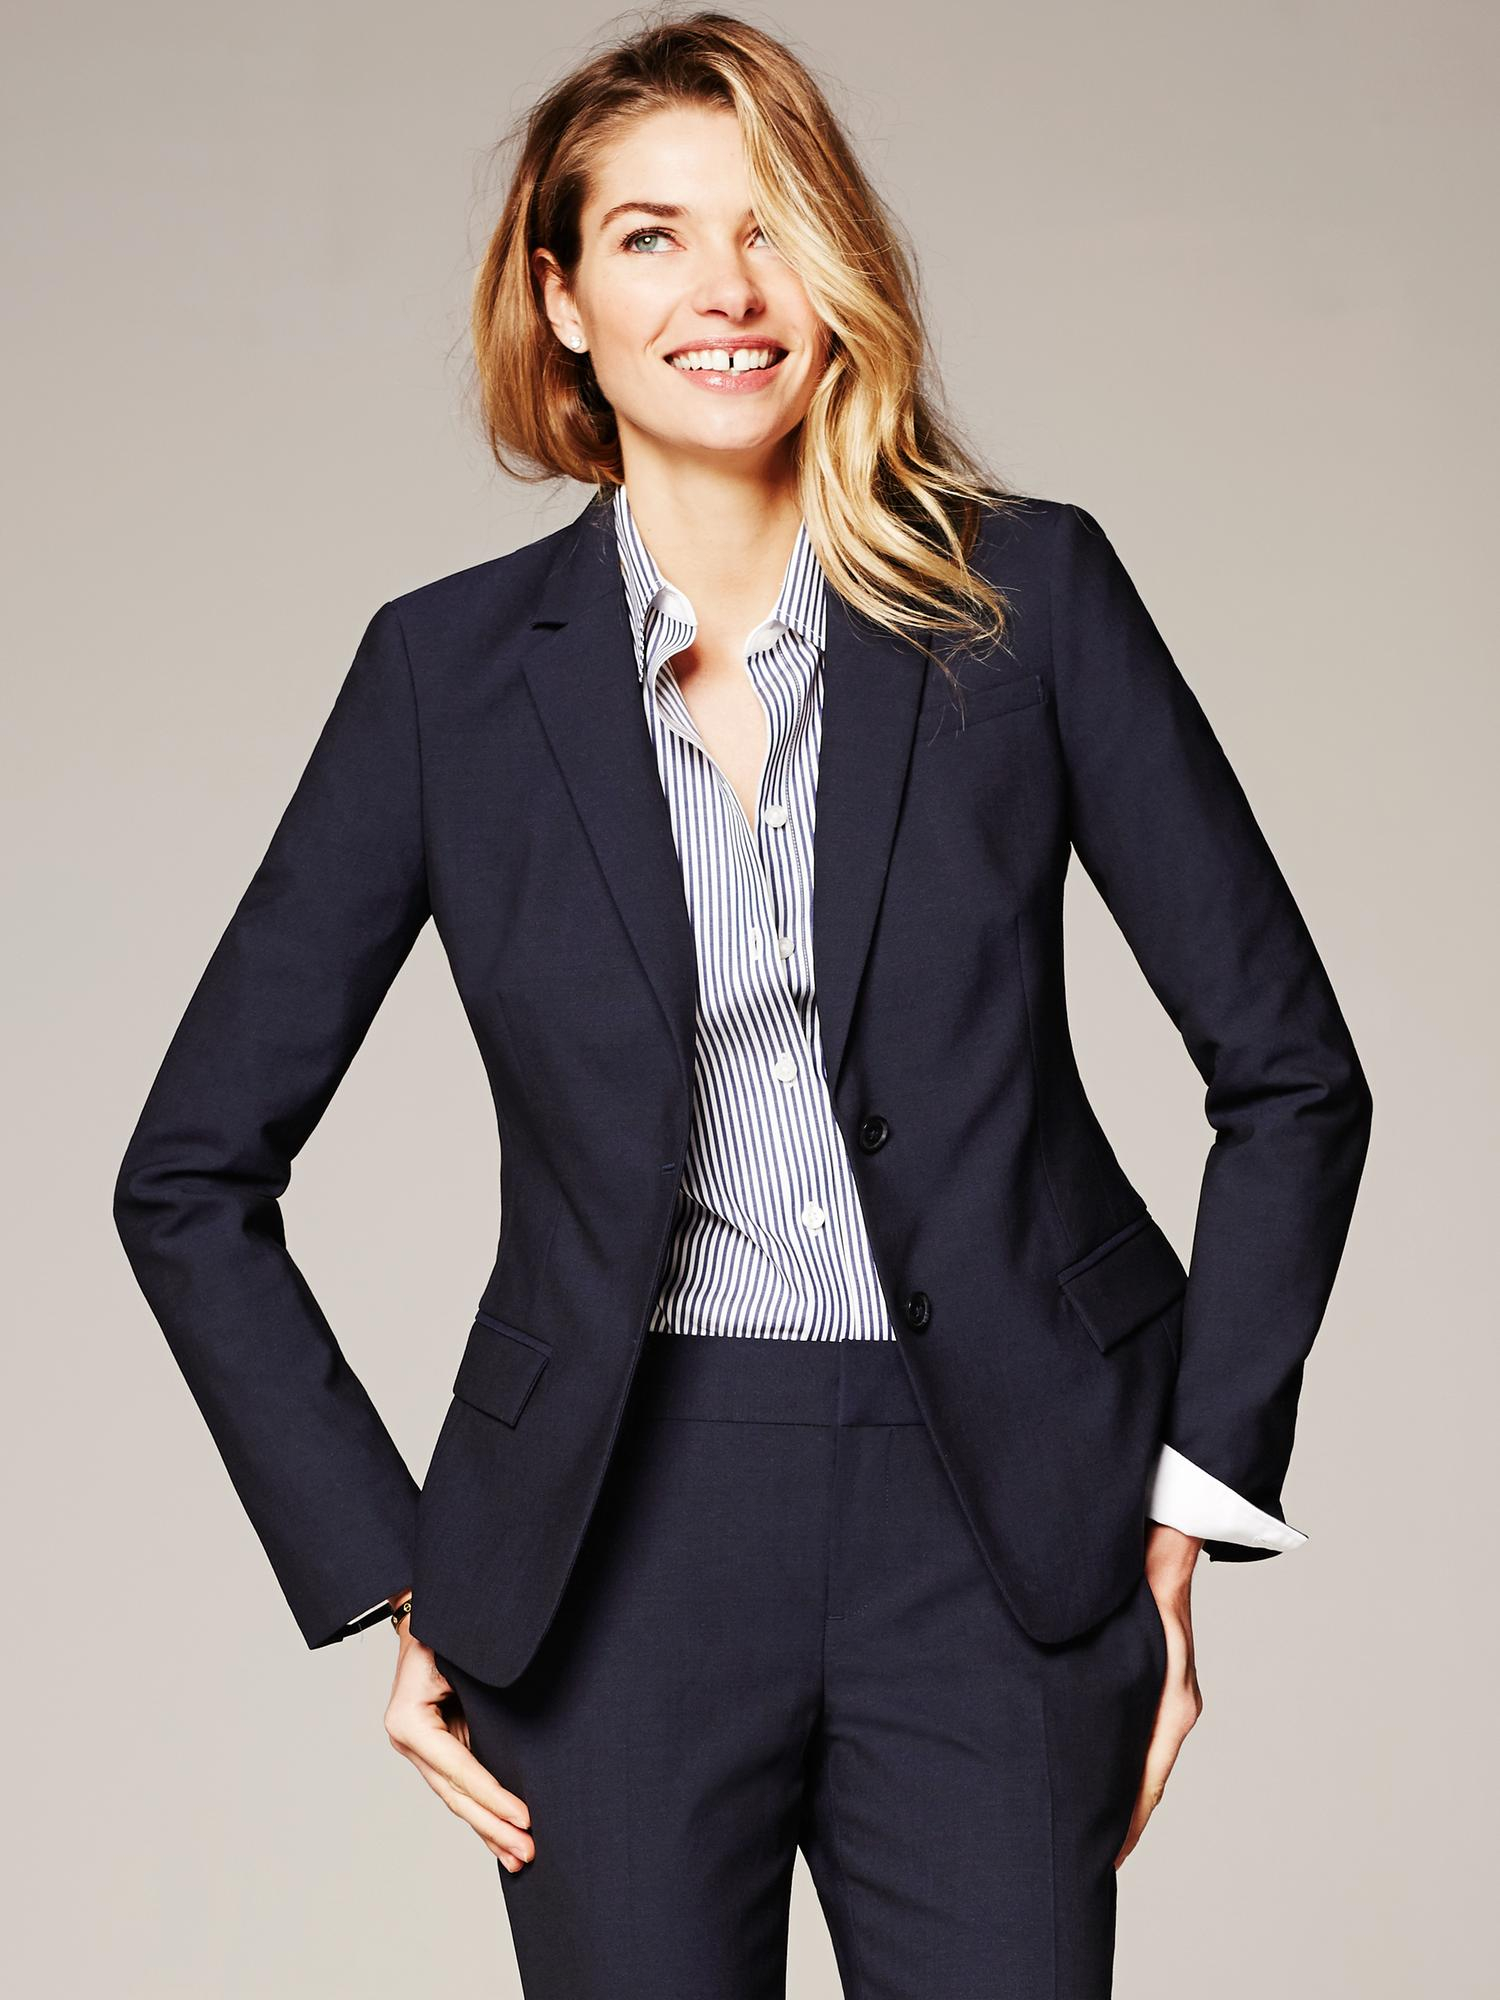 banana republic navy lightweight wool two button suit blazer in blue lyst. Black Bedroom Furniture Sets. Home Design Ideas